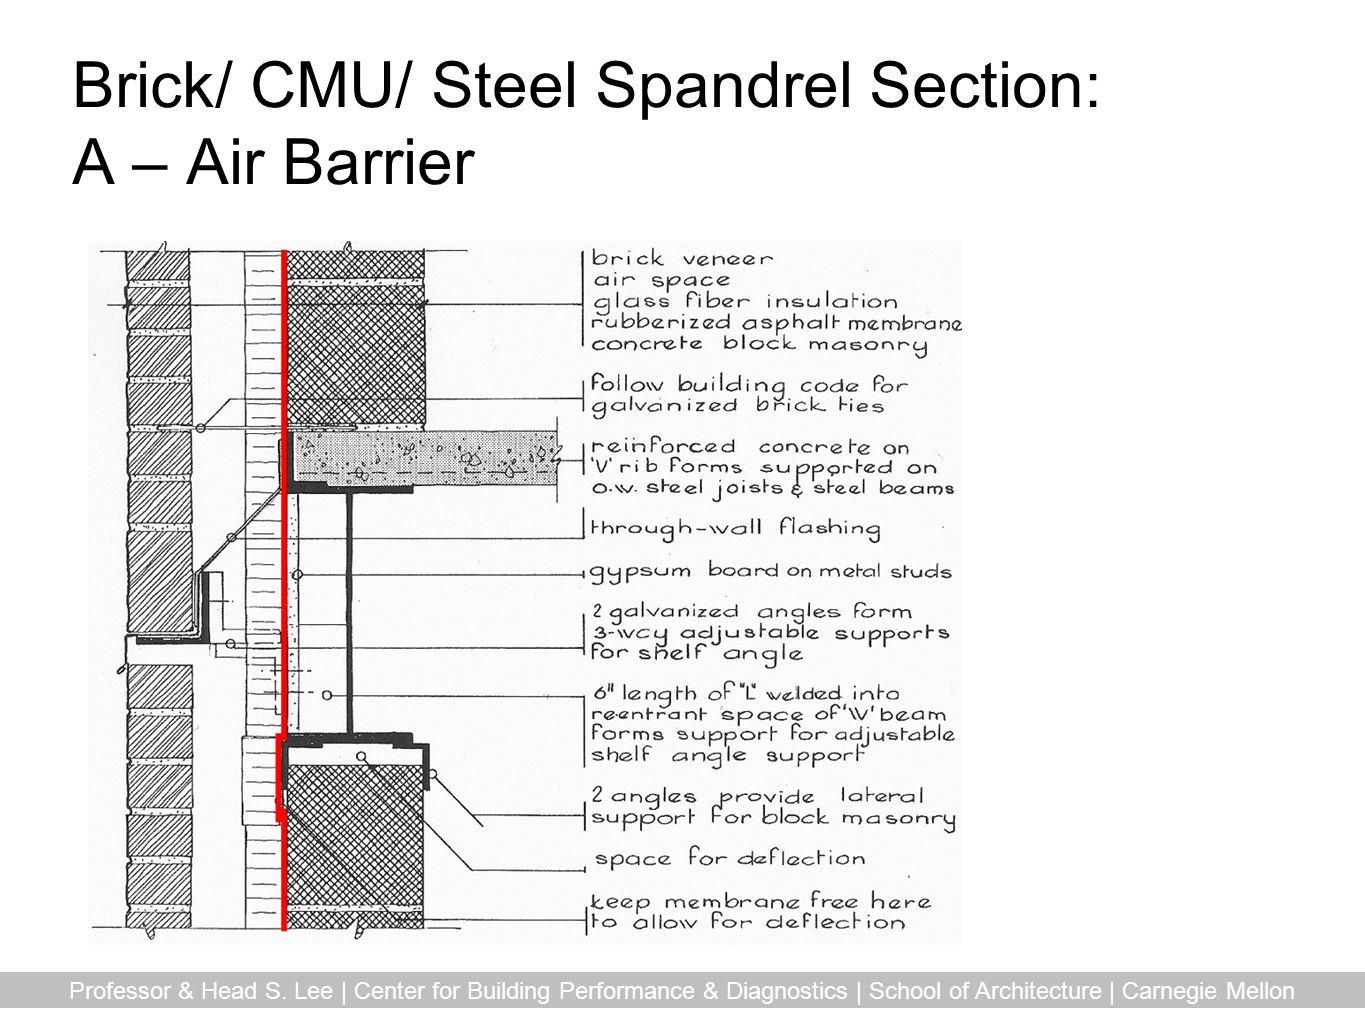 Brick/ CMU/ Steel Spandrel Section: A – Air Barrier